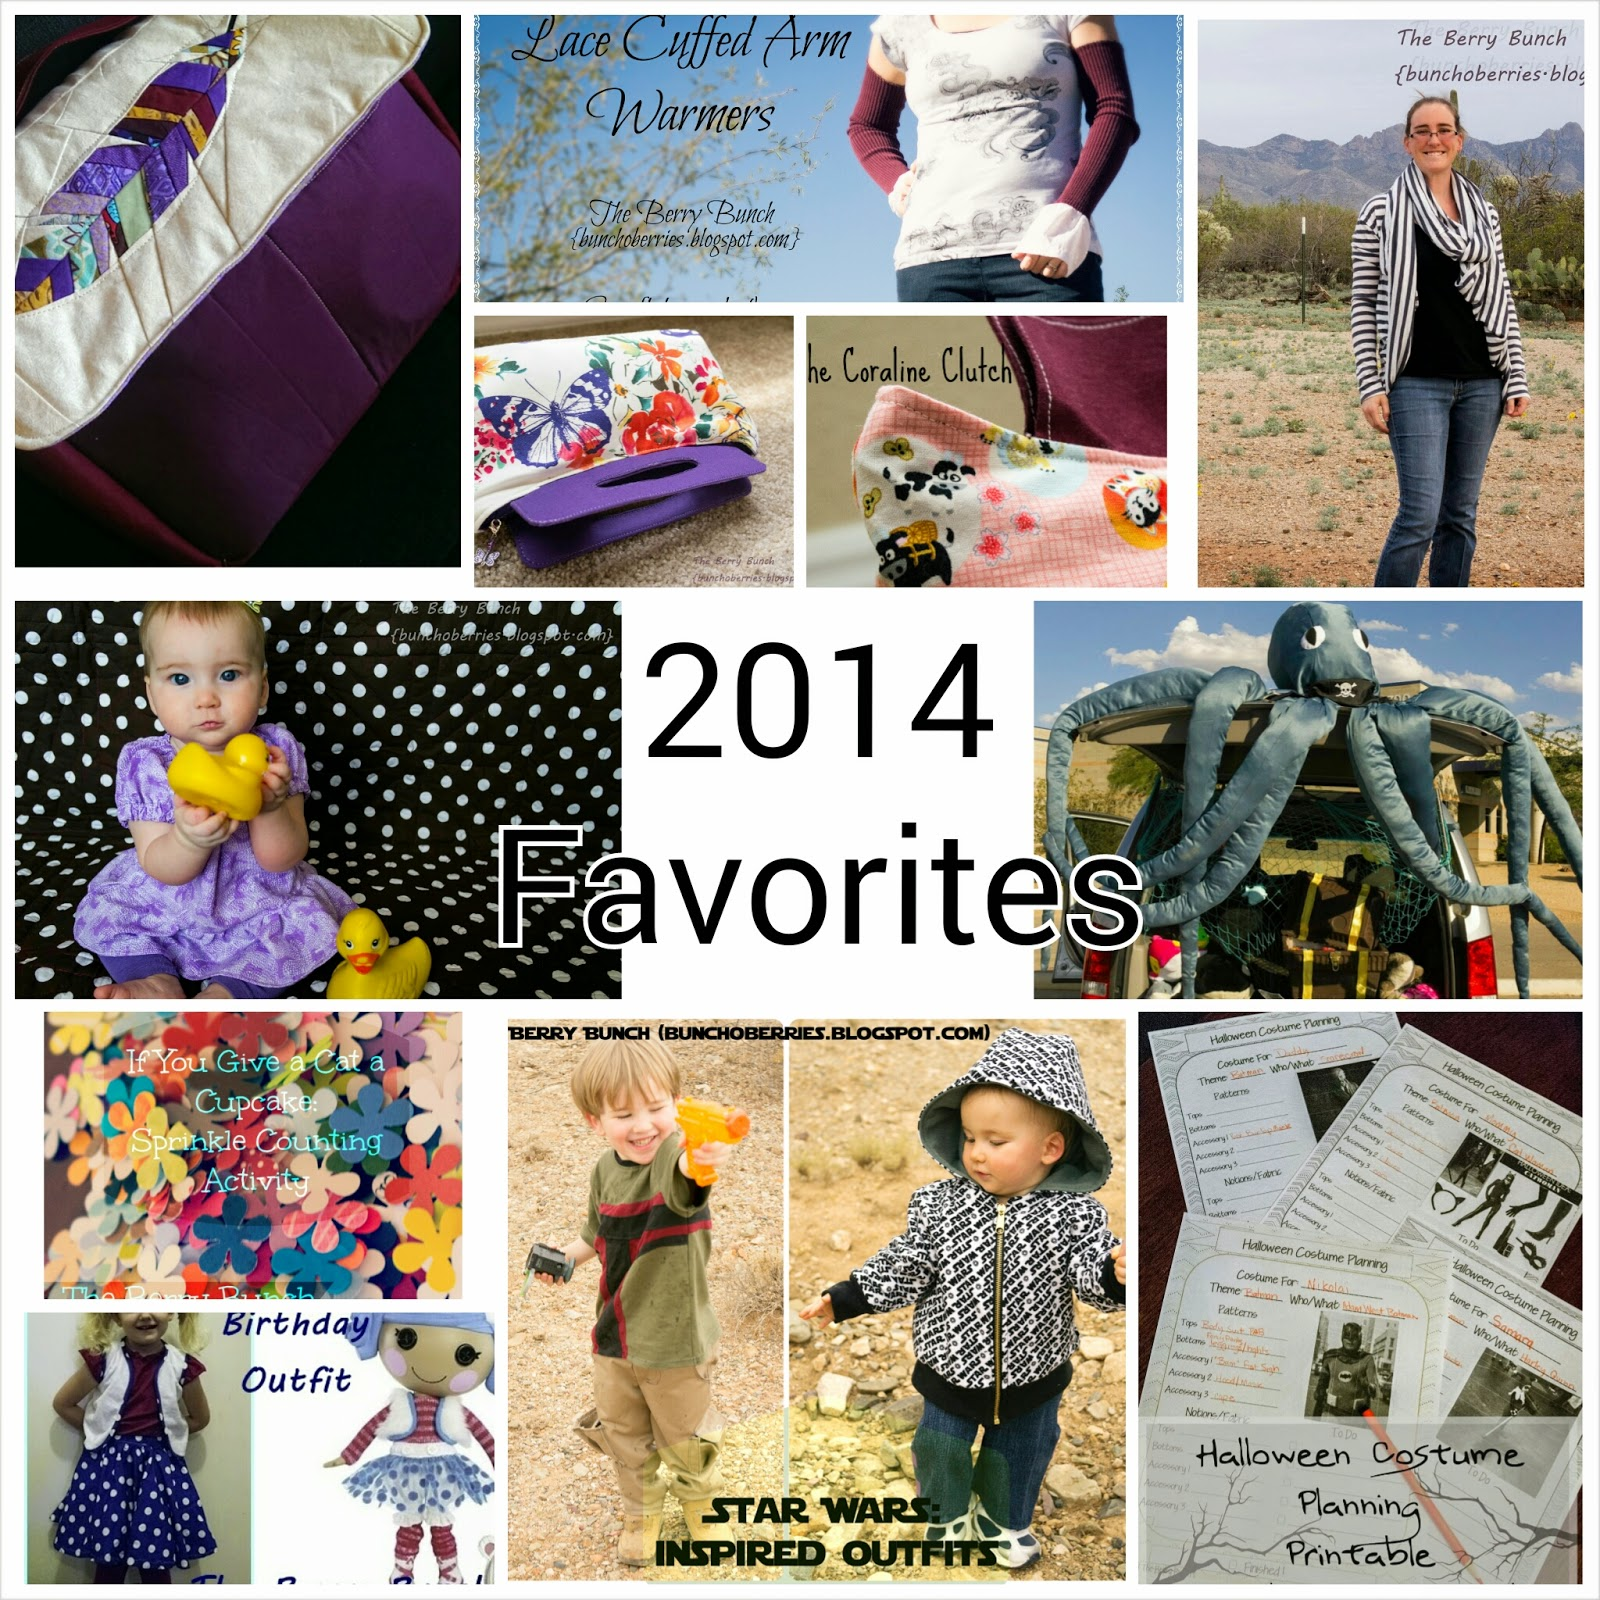 Berry Bunch 2014 Favorites